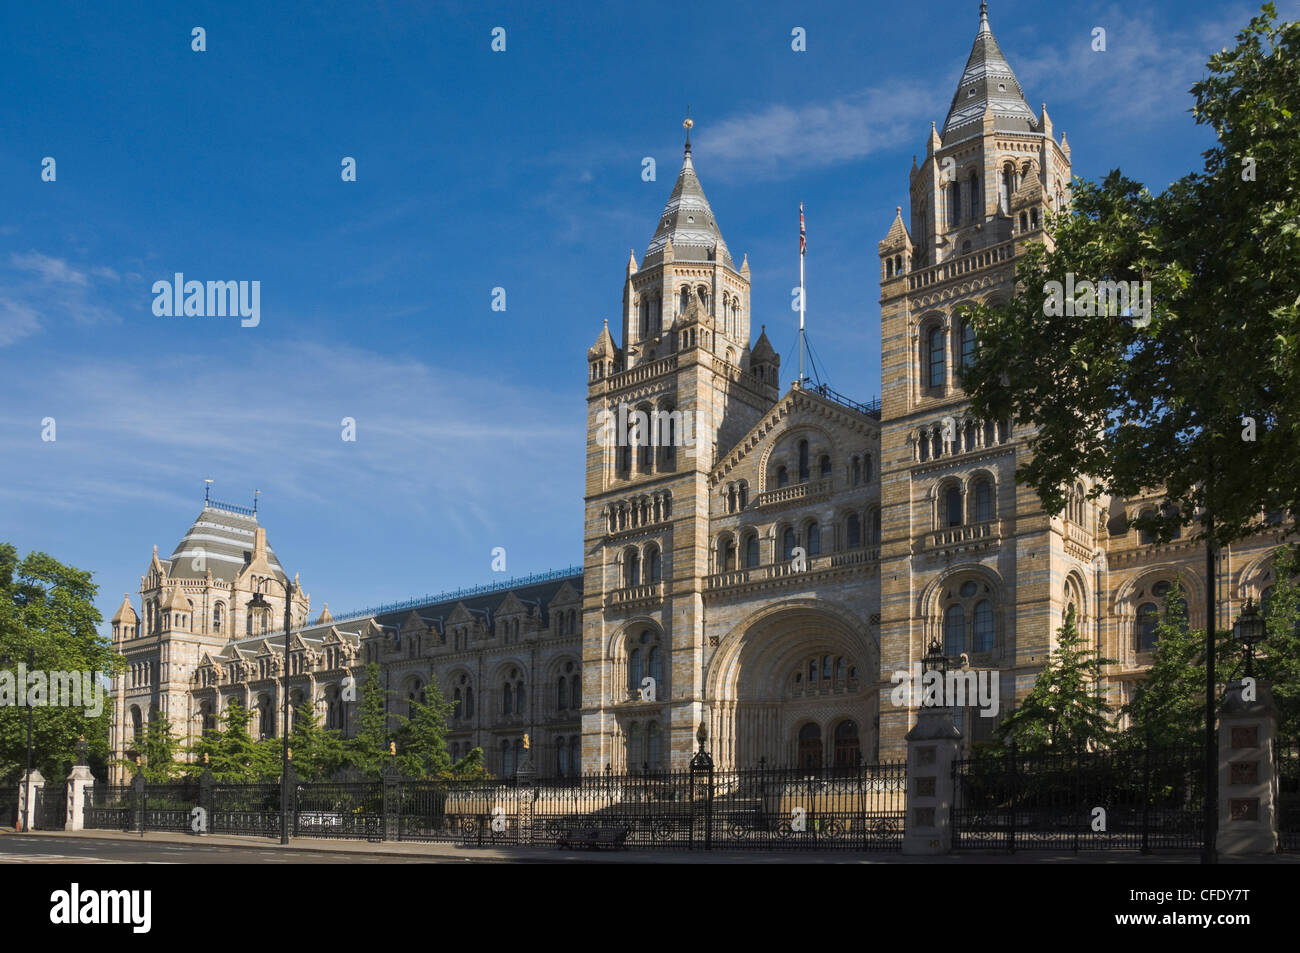 The Natural History Museum, London, England, United Kingdom, Europe - Stock Image